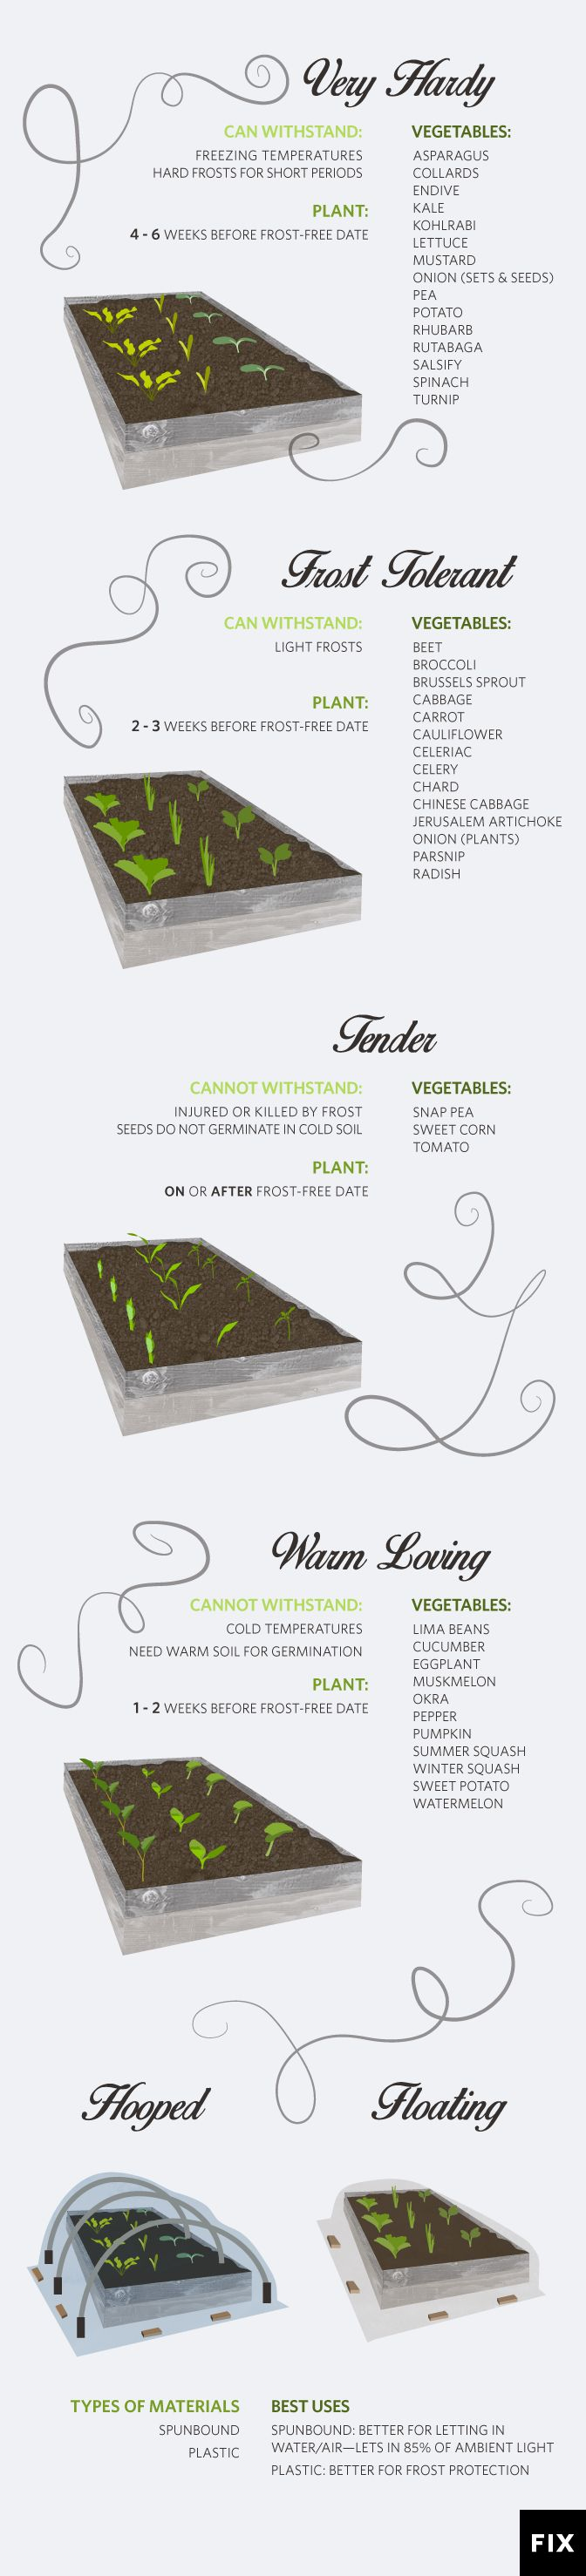 9 Steps to Harden Off Seedlings: Follow these steps to get your sprouts acclimated to the outdoors! #Gardening